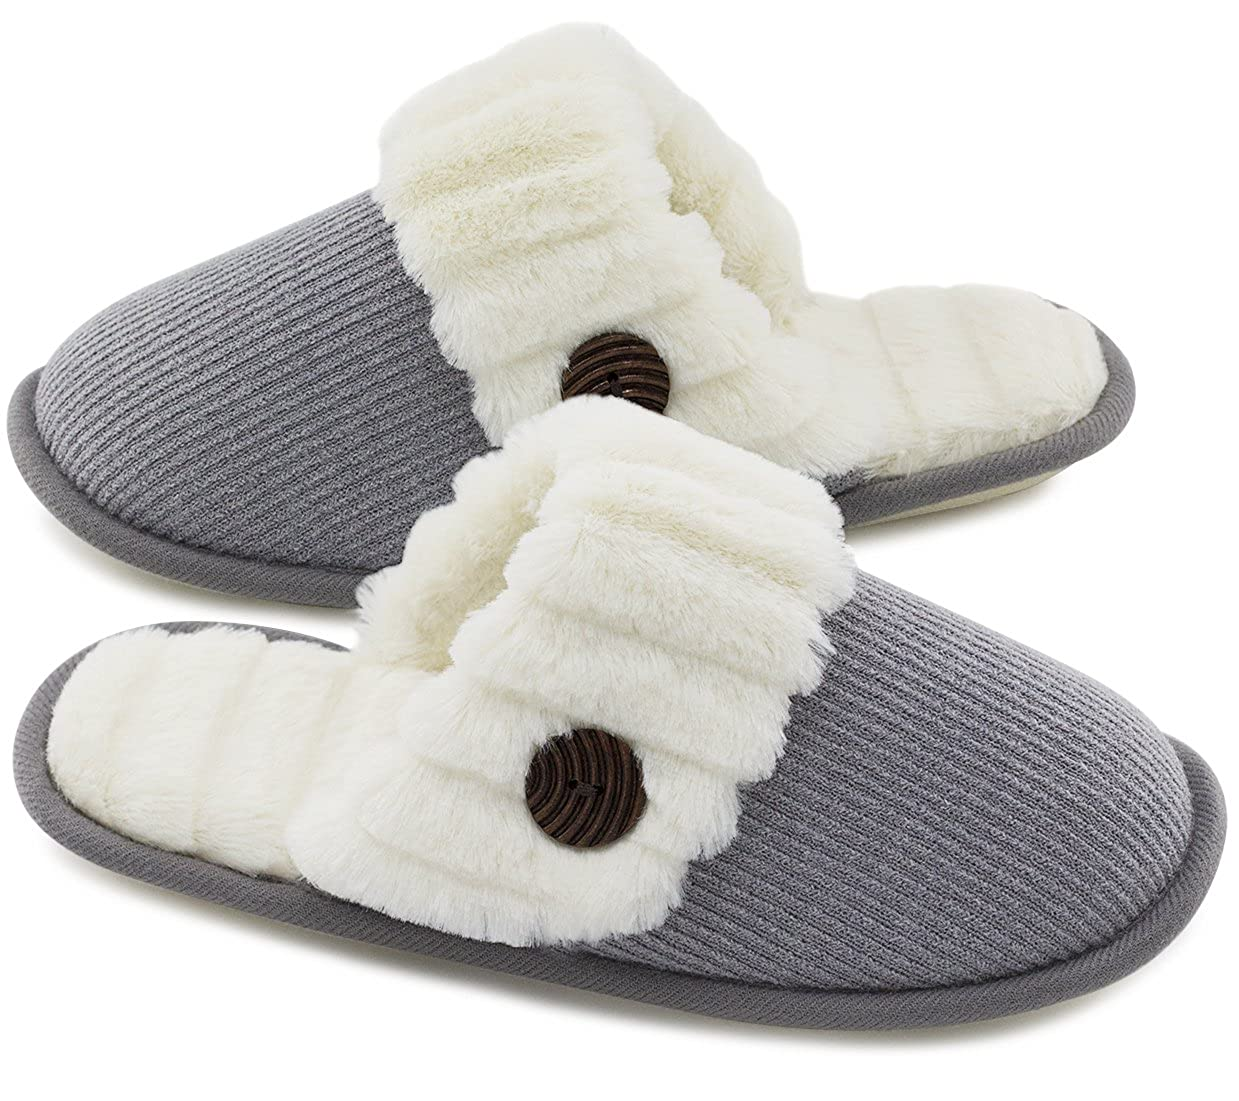 HomeTop Women's Cute Comfy Fuzzy Knitted Memory Foam Slip On House Slippers Indoor